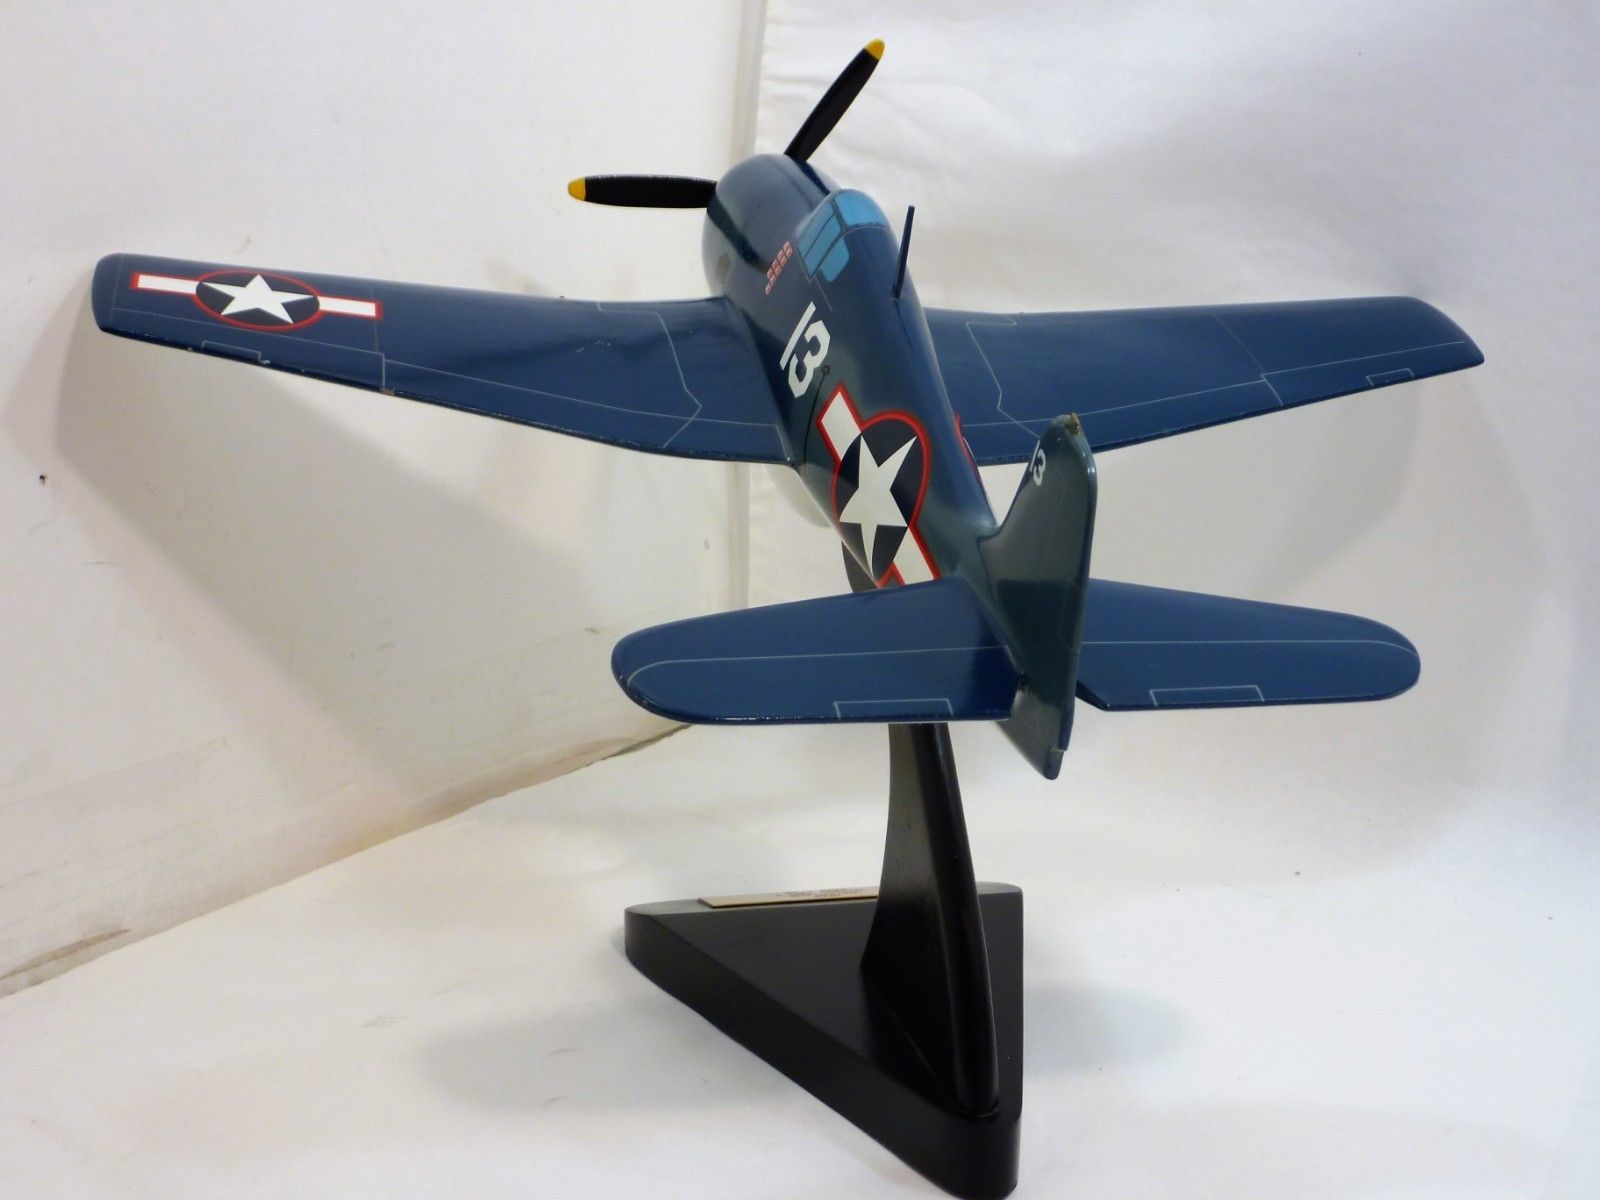 Toys and Models Corp 1942 Dauntless Douglas SBD 4 Scale 1/32 Model Plane